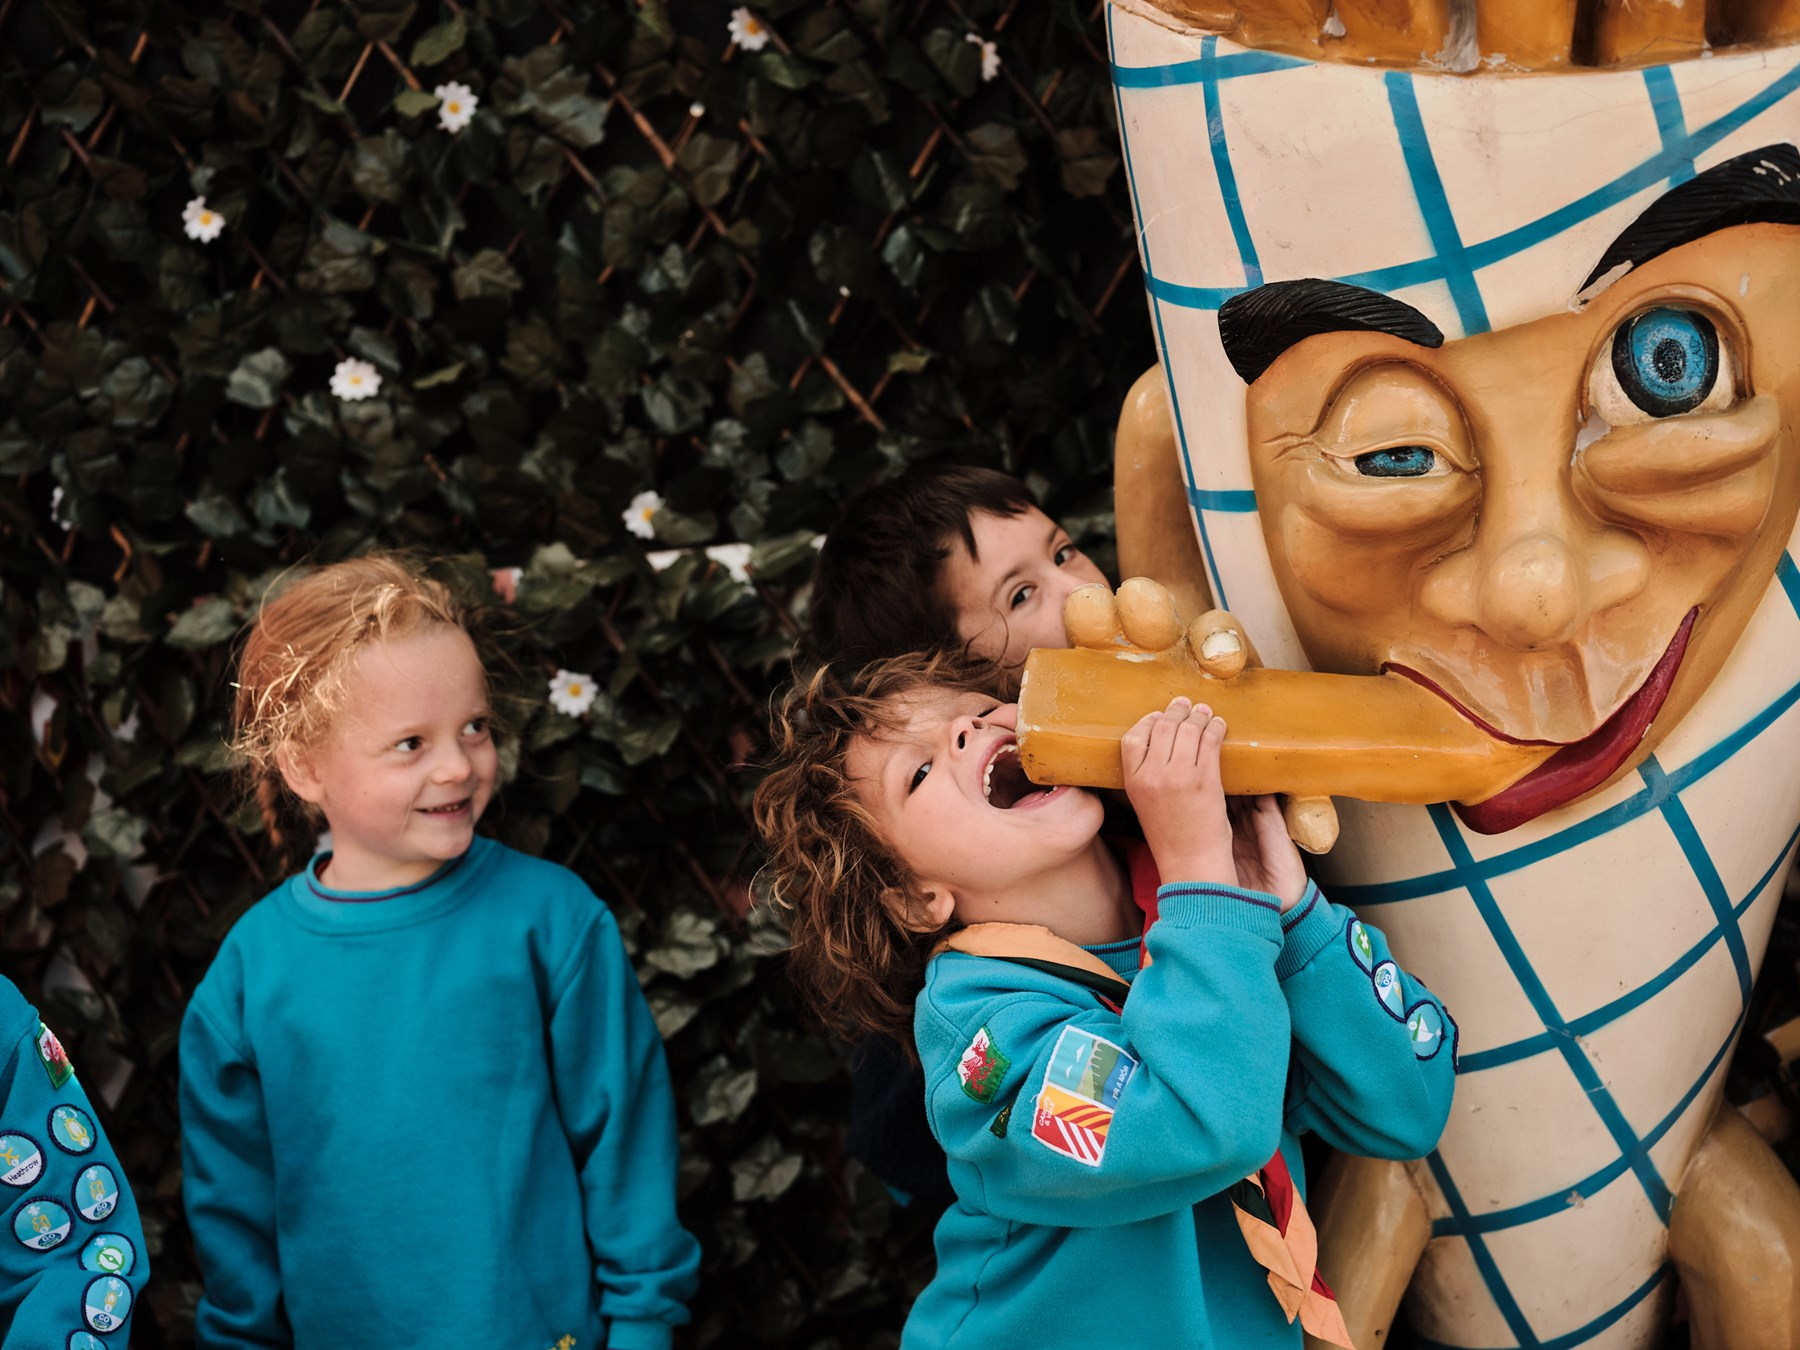 Four Beavers pose for a photo with a statue of a giant cone of chips. One of the Beavers is leaning up on his tip toes with his mouth wide open, pretending to eat the statue.